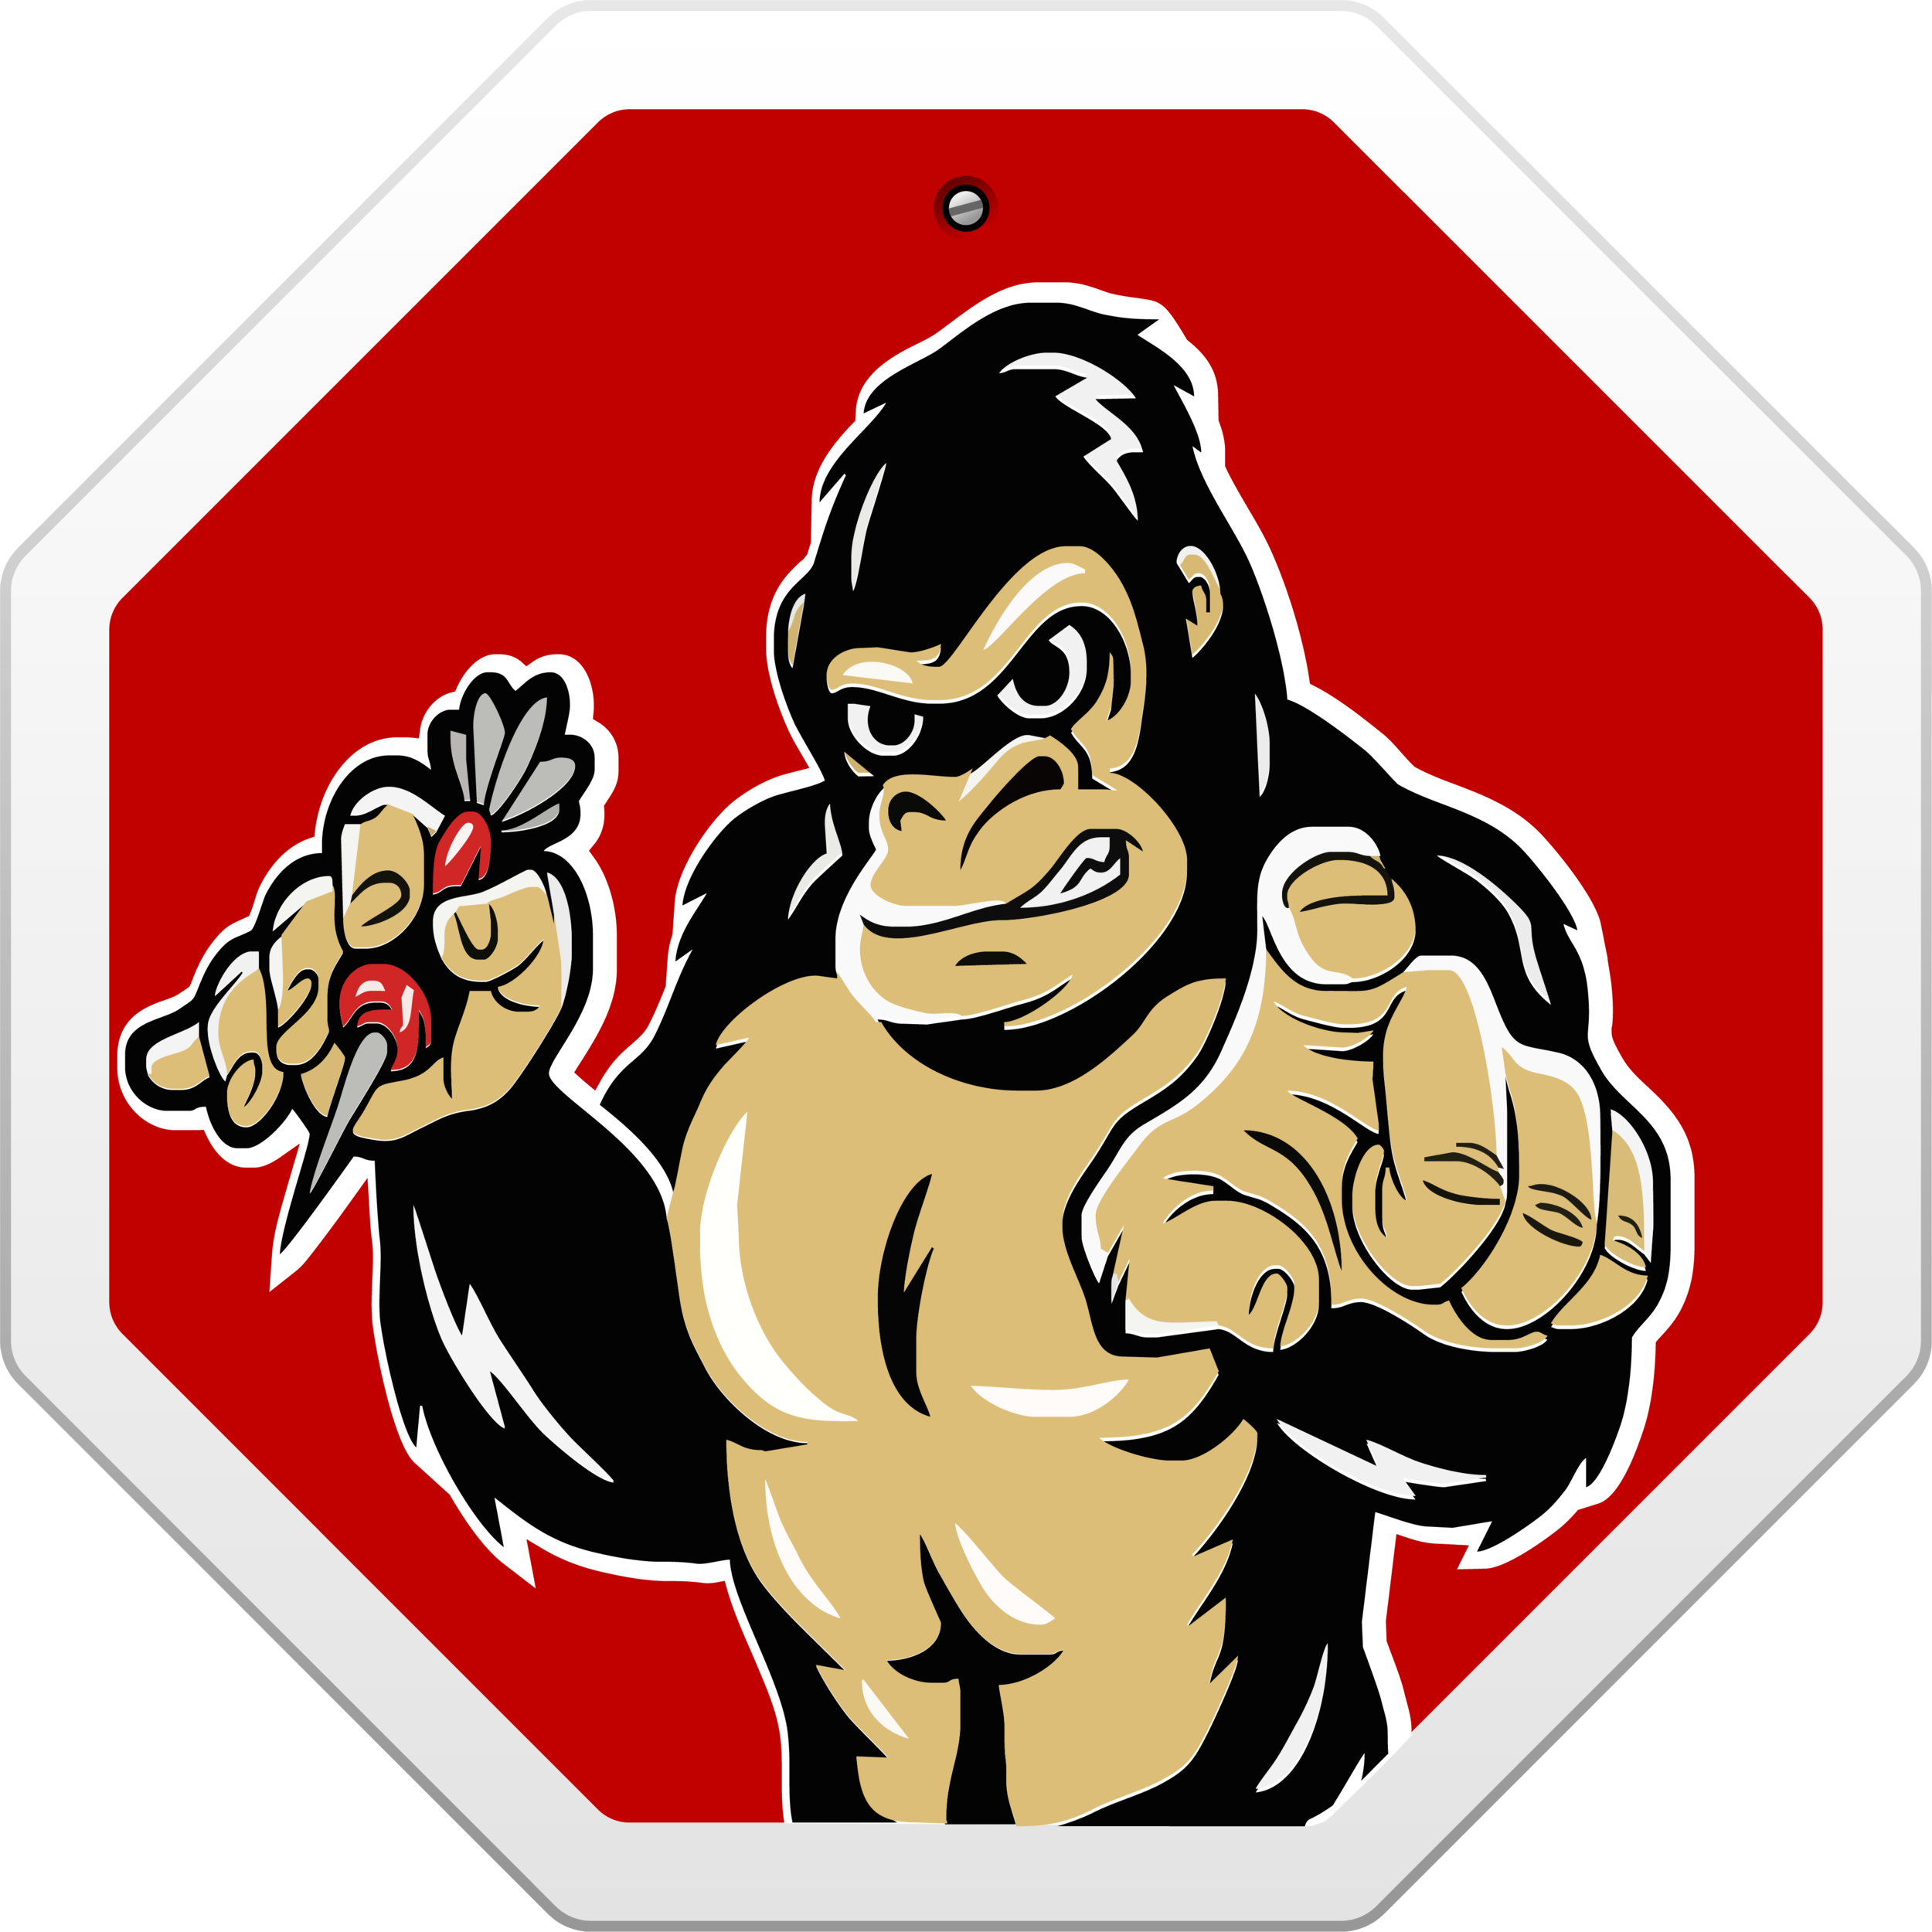 graphic freeuse stock Ape clipart bodybuilding. Stop monkeying with your